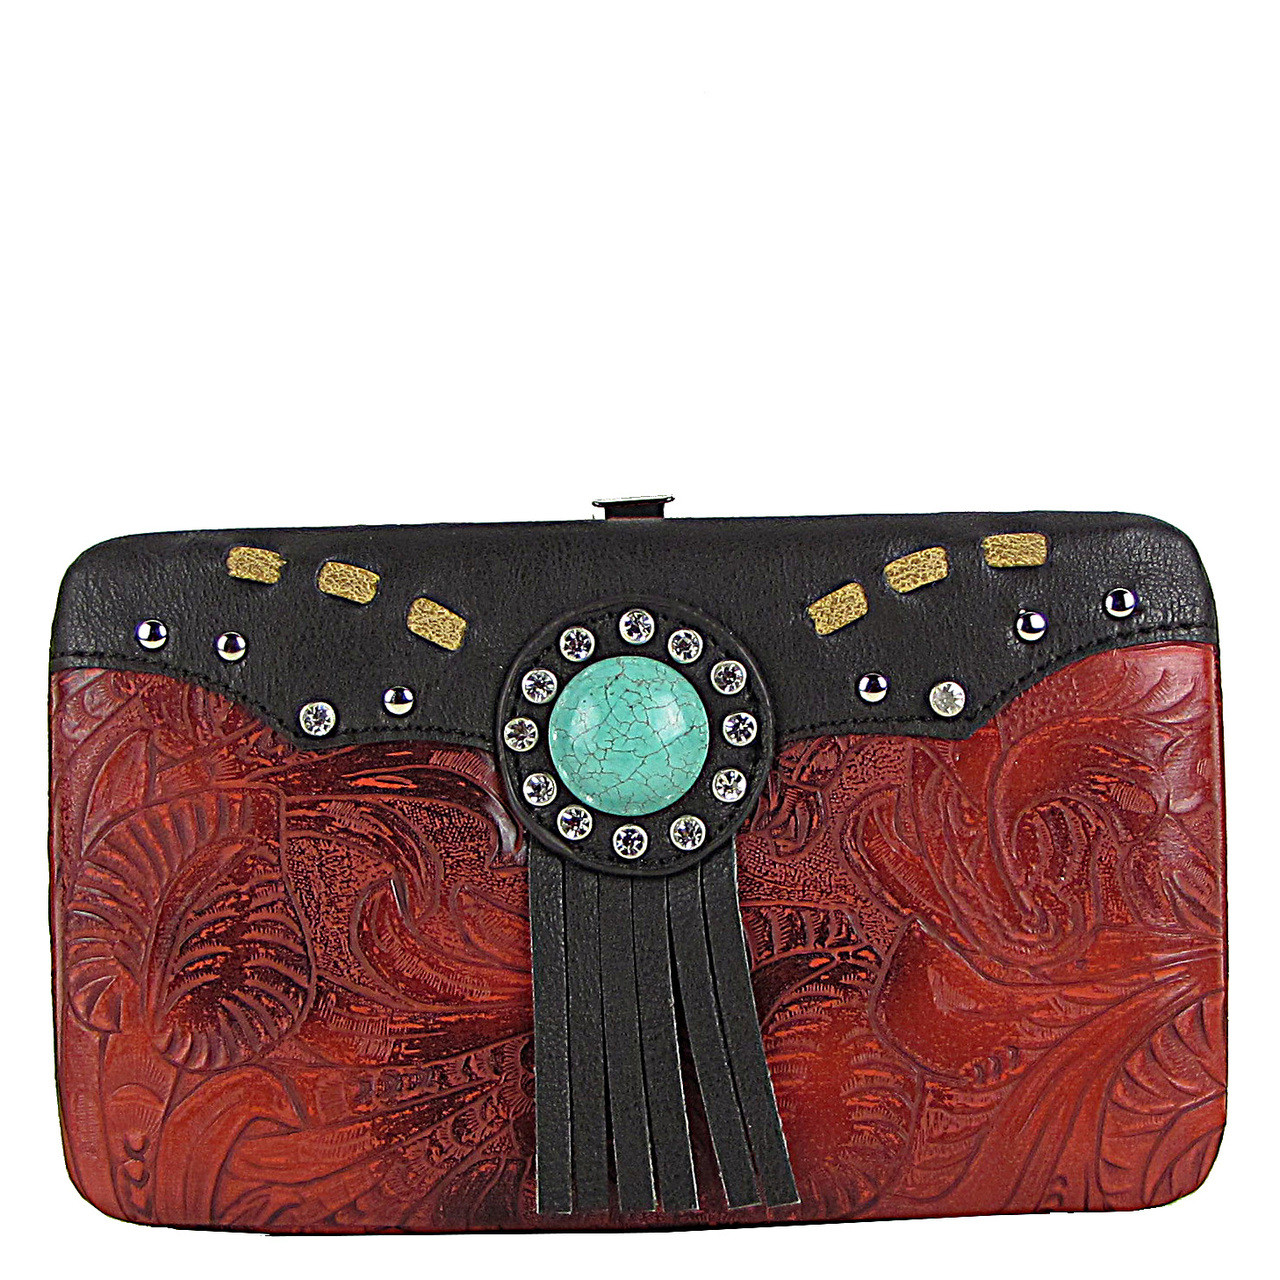 RED WESTERN TOOLED TASSEL LOOK FLAT THICK WALLET FW2-1261RED